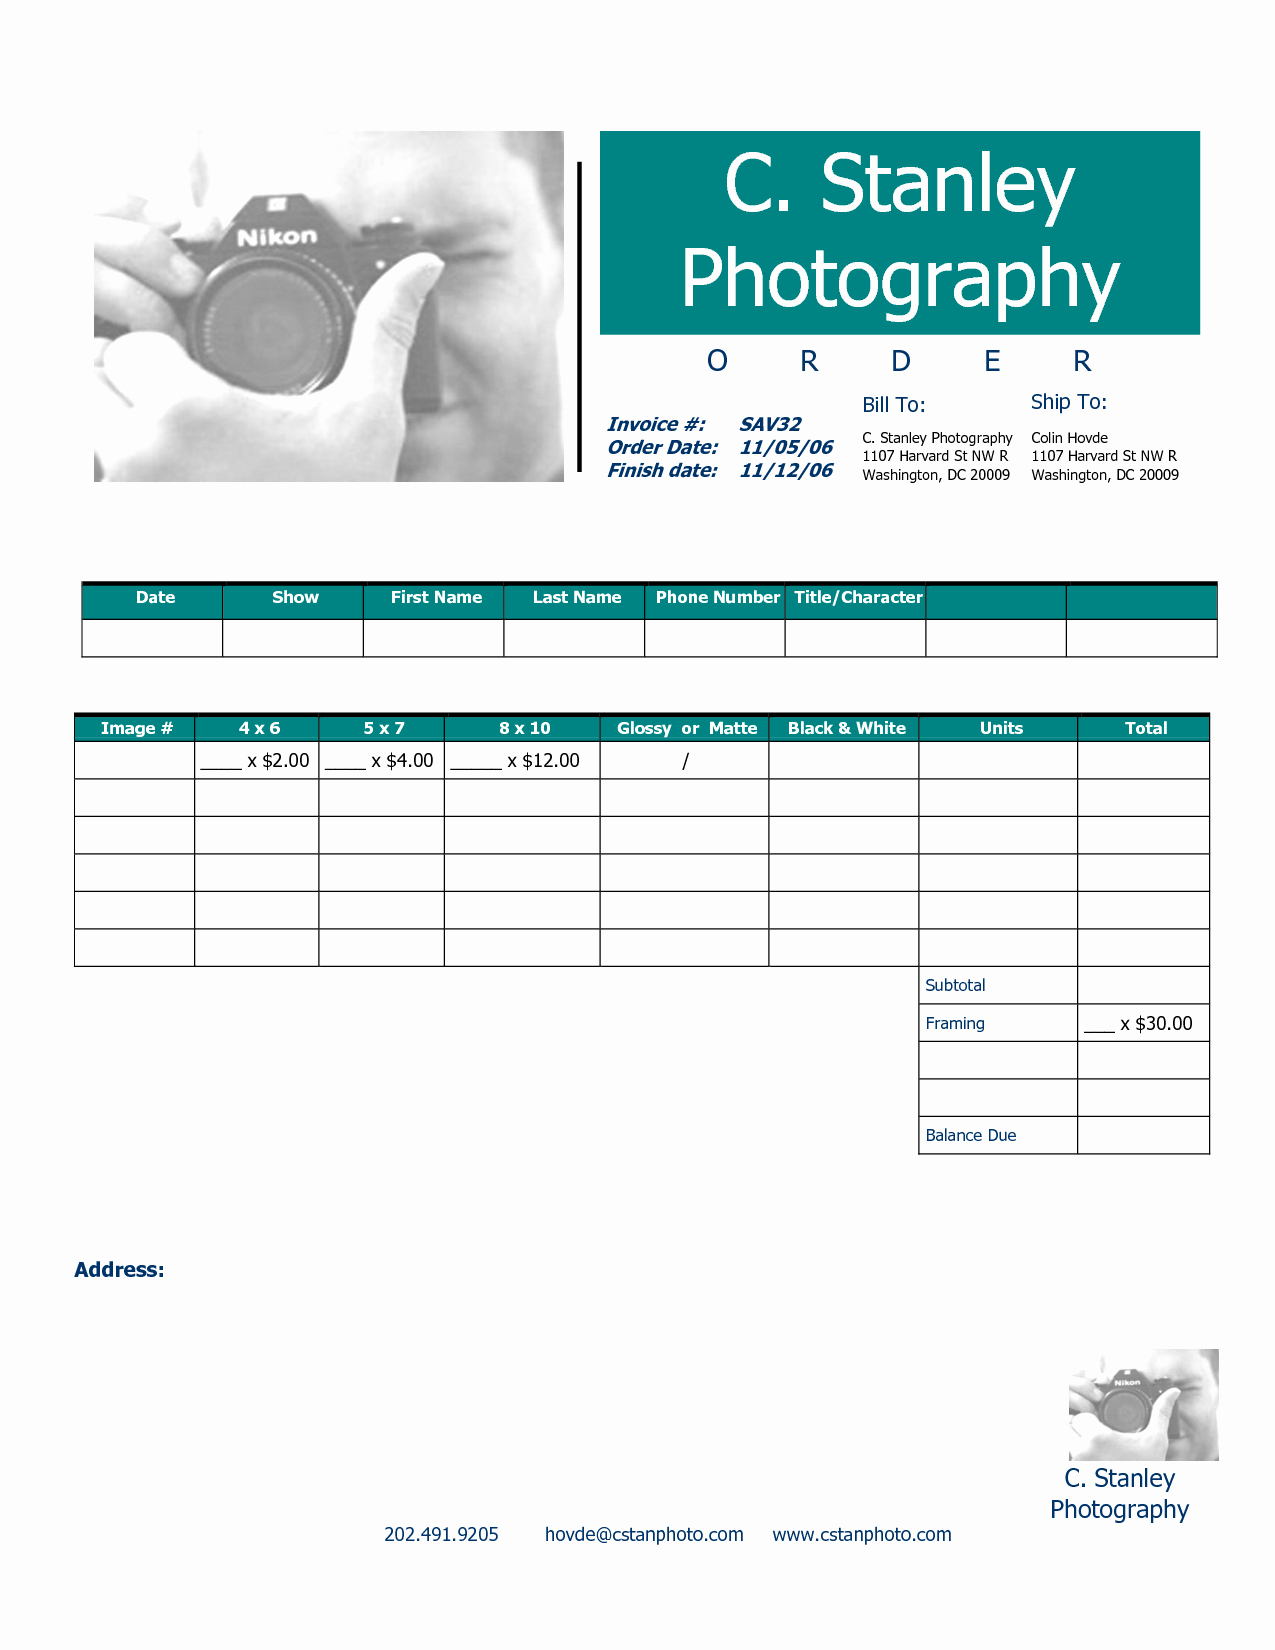 Graphy Invoice Template Spreadsheet Templates for